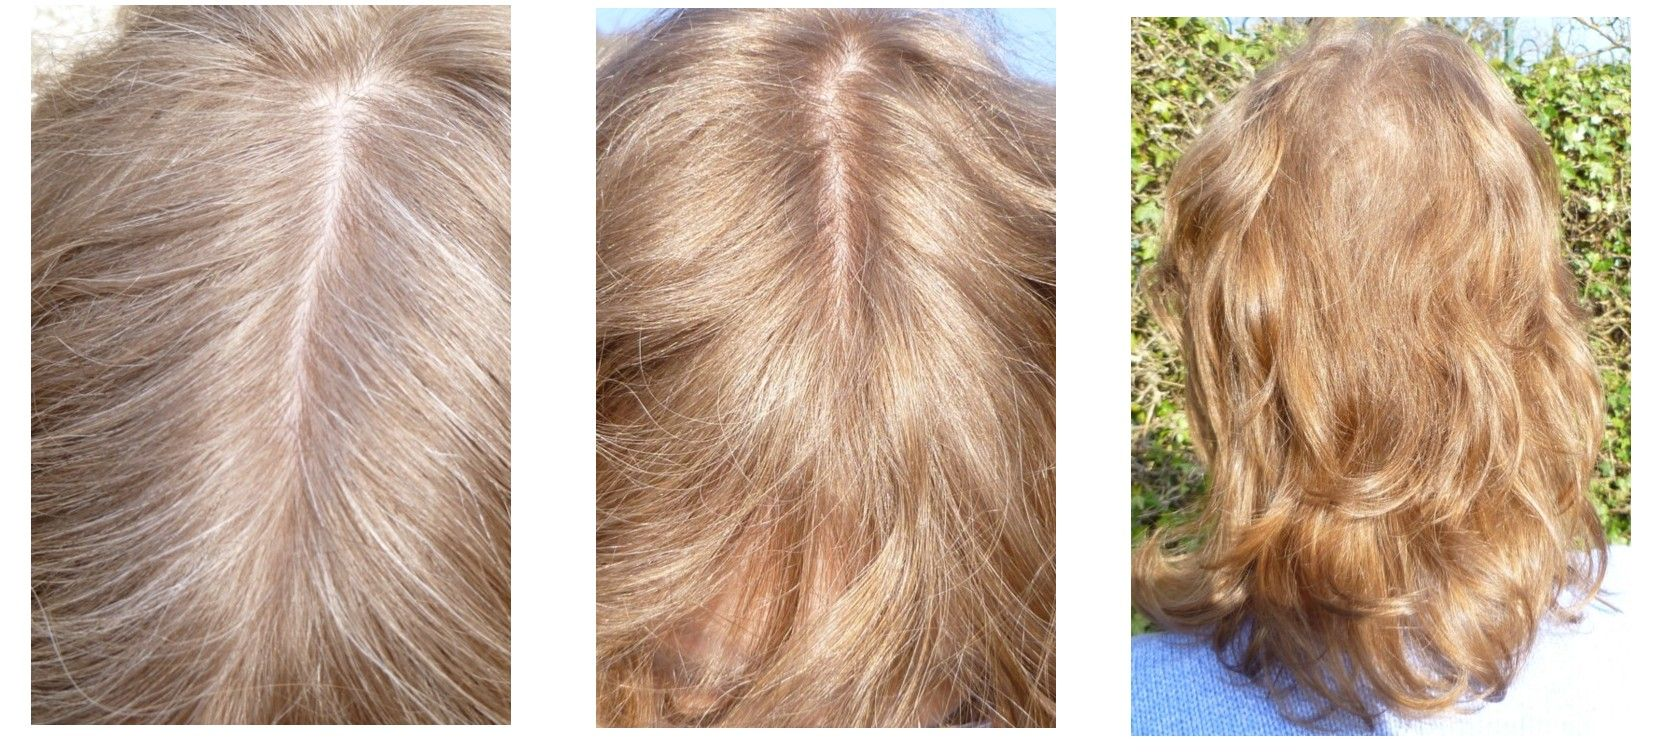 Colouring Your Hair Strawberry Blonde With Cassia And A Henna